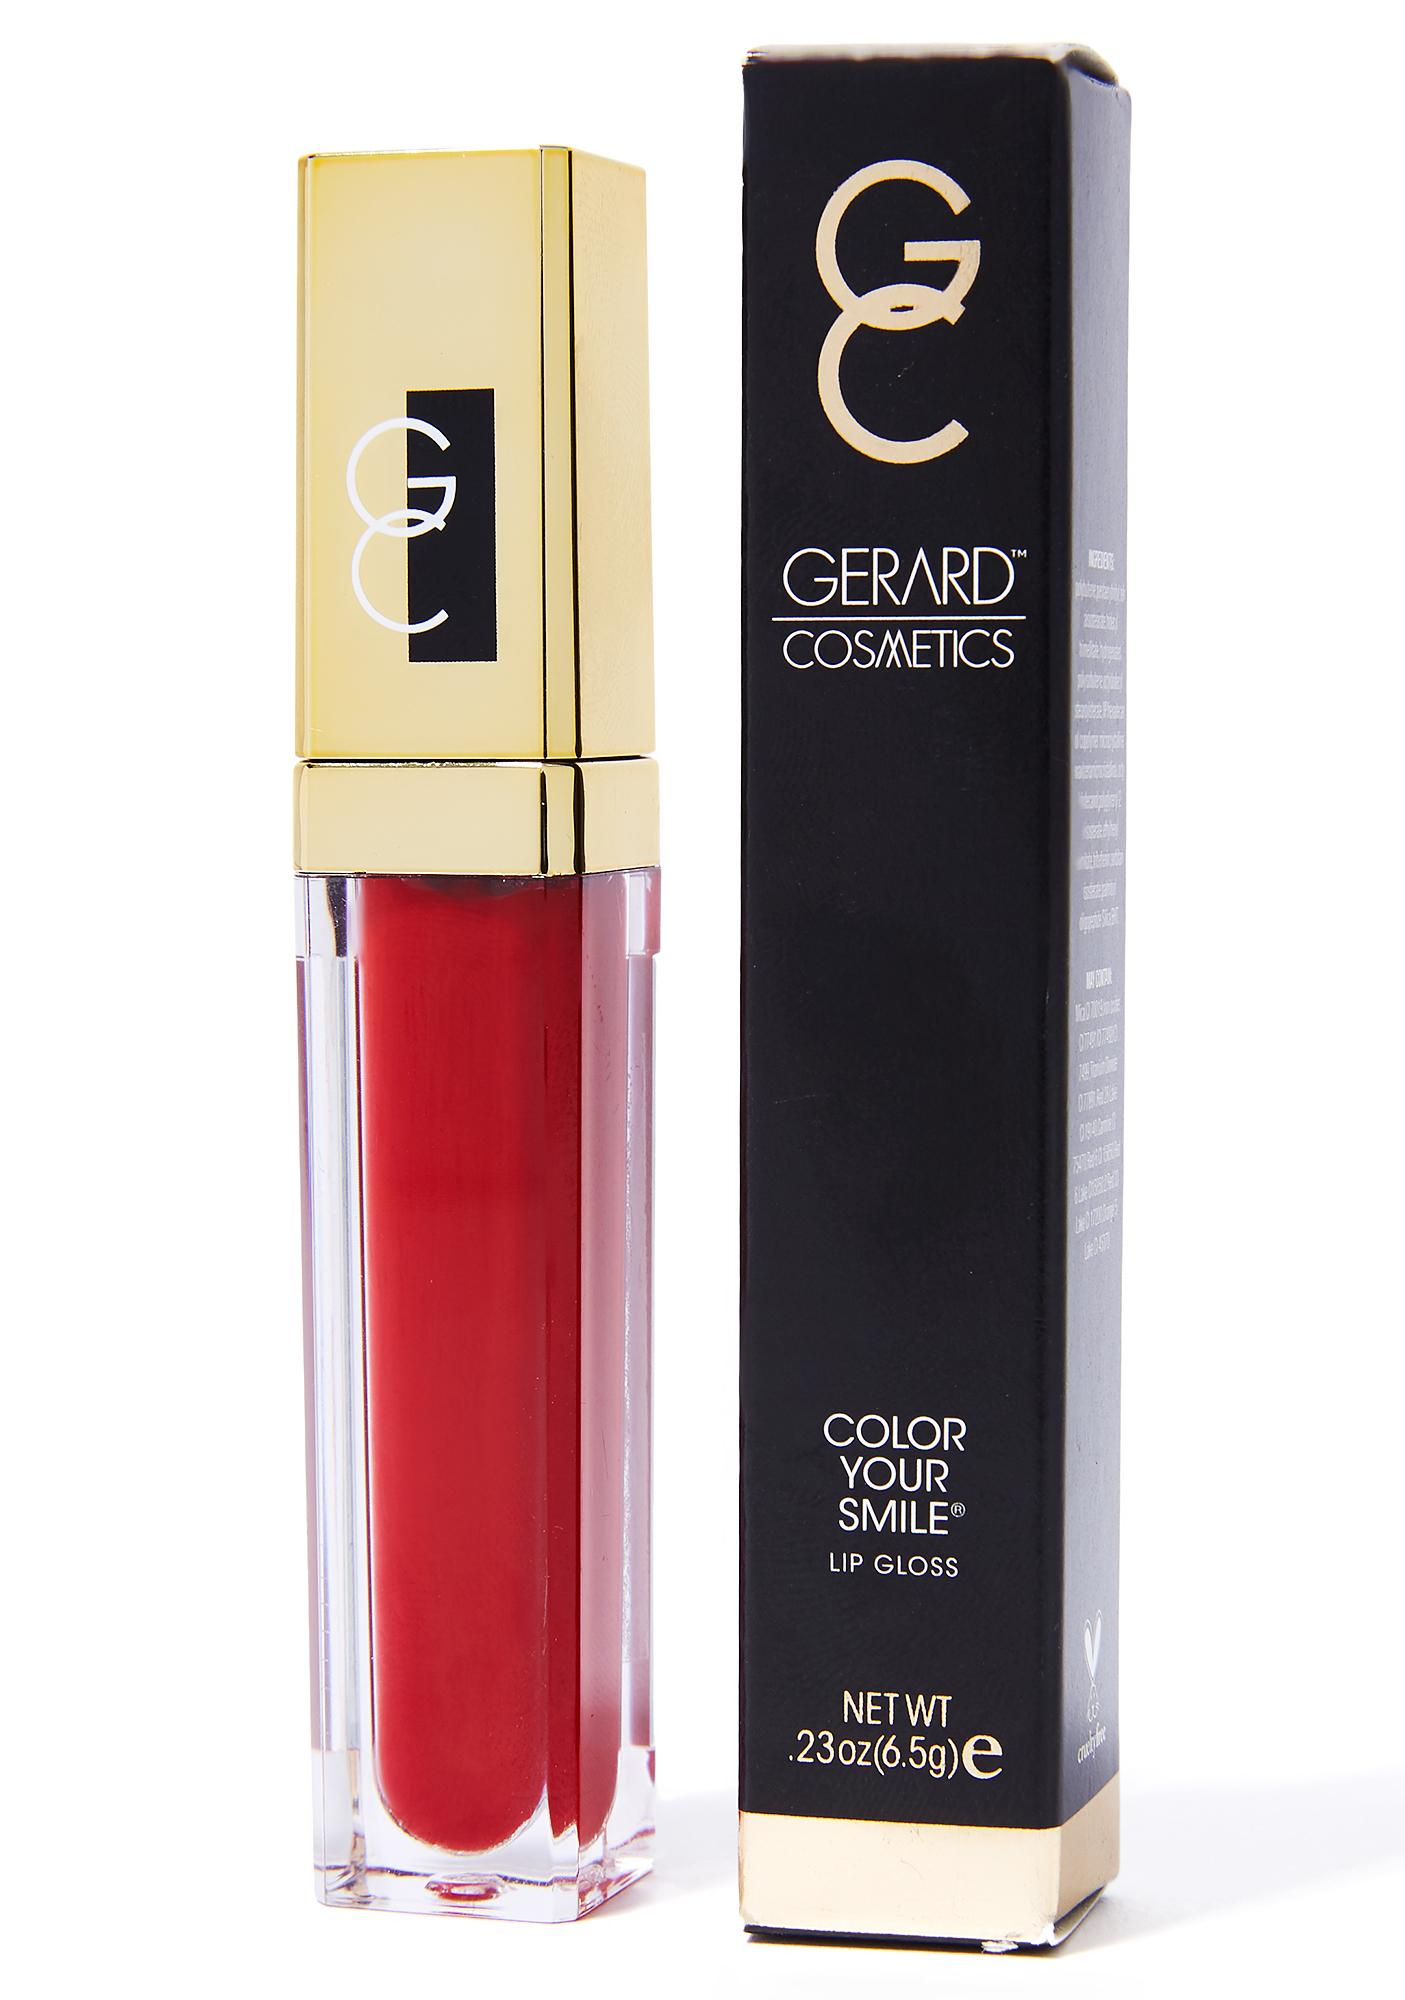 Gerard Cosmetics Candy Apple Color Your Smile Lighted Lip Gloss